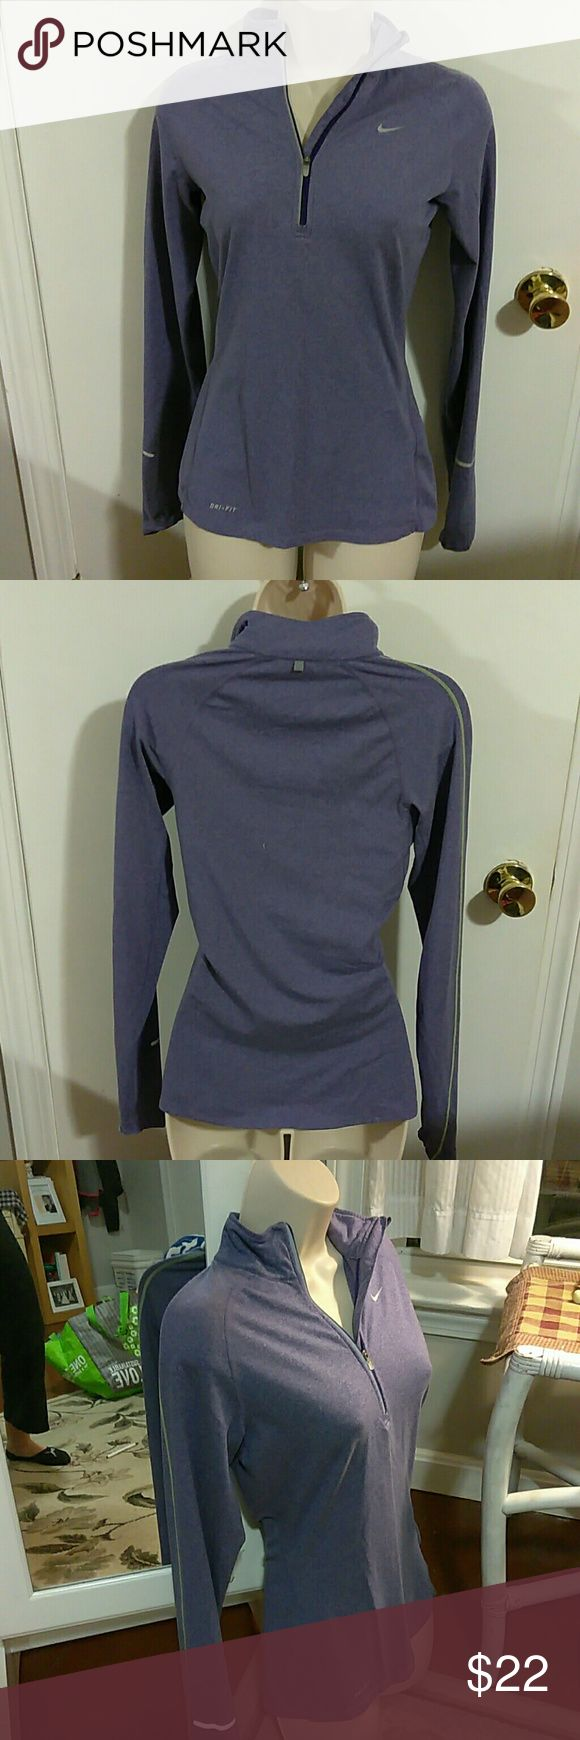 Nike Dri- Fit Xs Purple Athletic Top Nike Dri-Fit Xs Purple Pull Over Fitted Athletic Top Long Sleeve with 1/4 Zipper. In Excellent Condition and From a smoke free home!! Nike Tops Sweatshirts & Hoodies